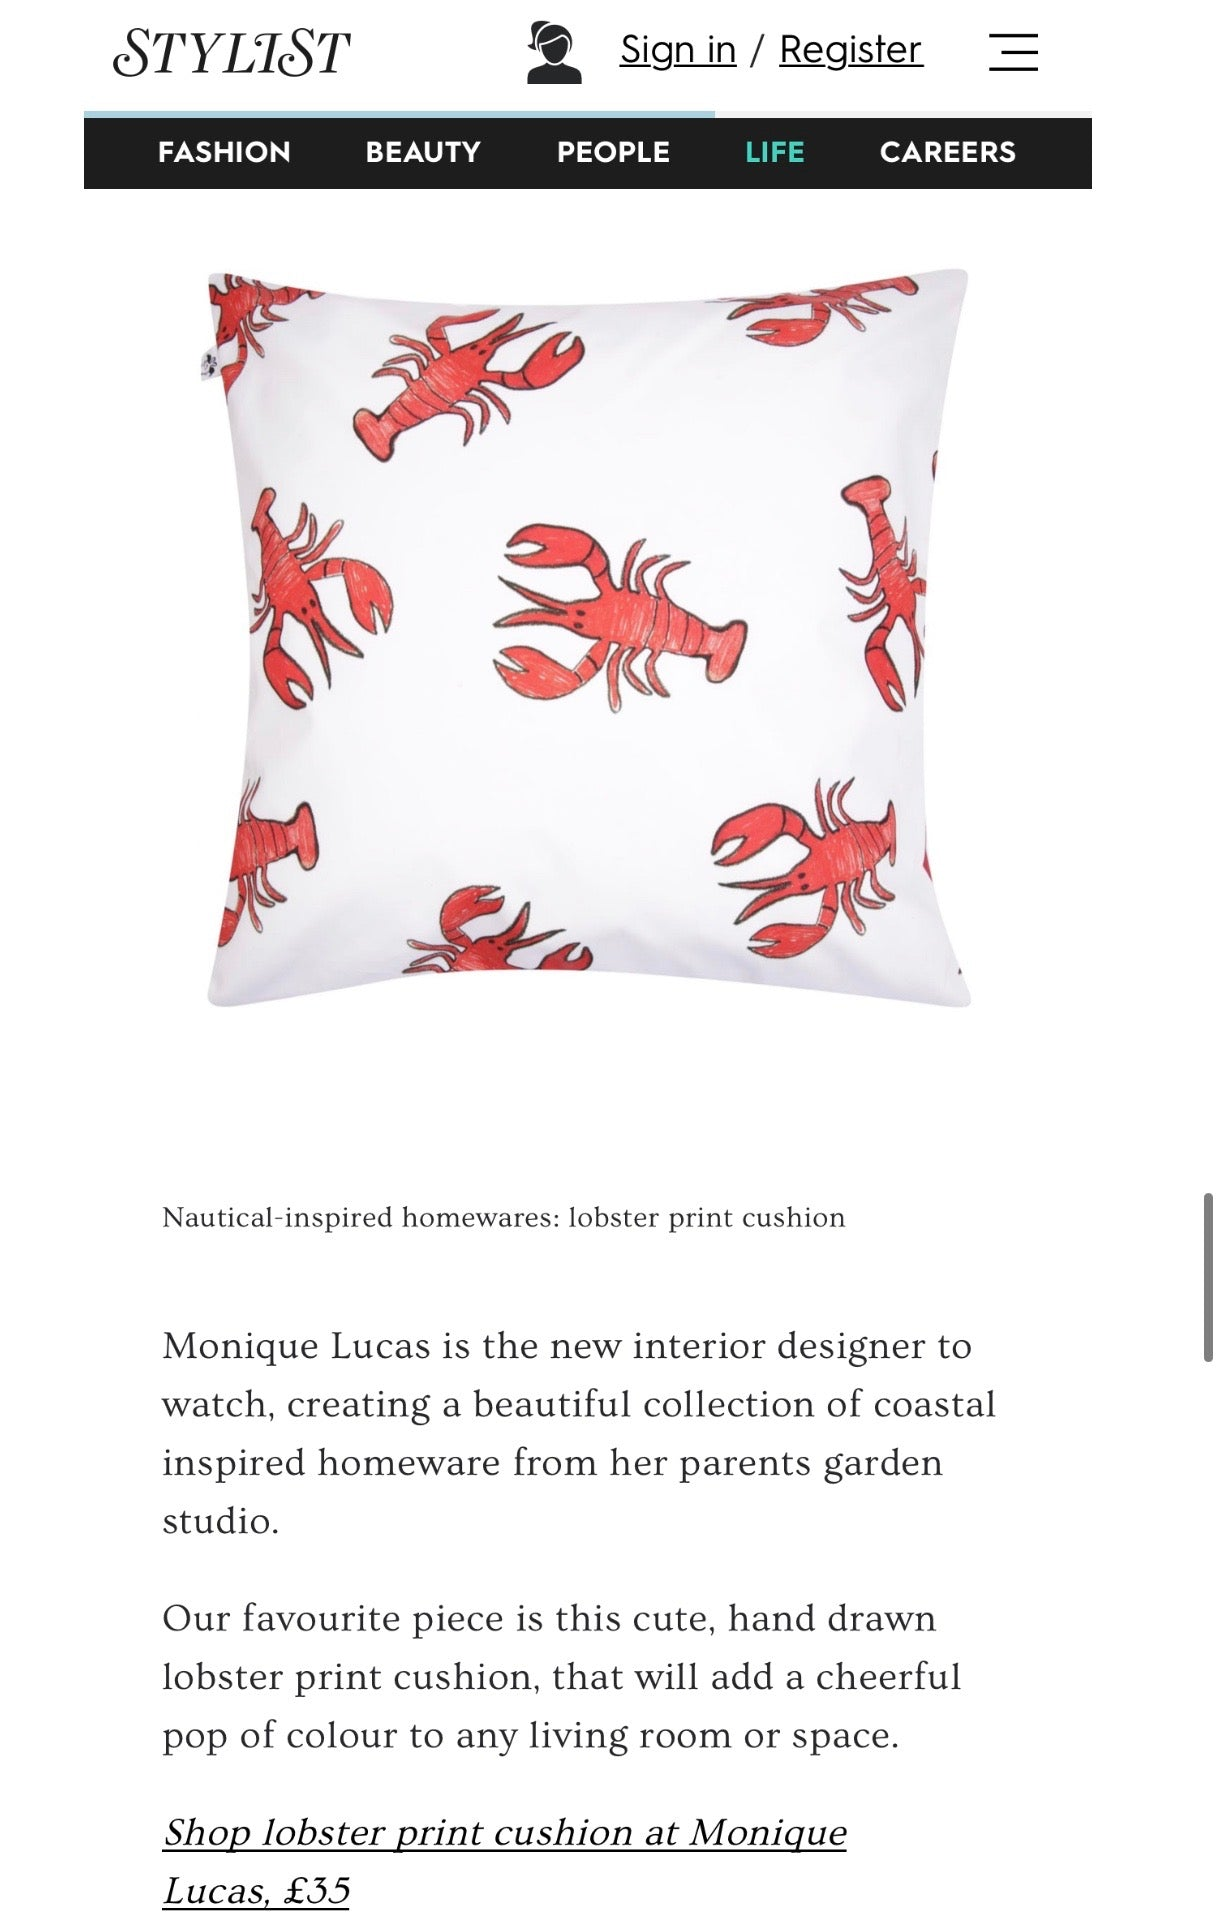 Lobster Cushion in Stylist Magazine